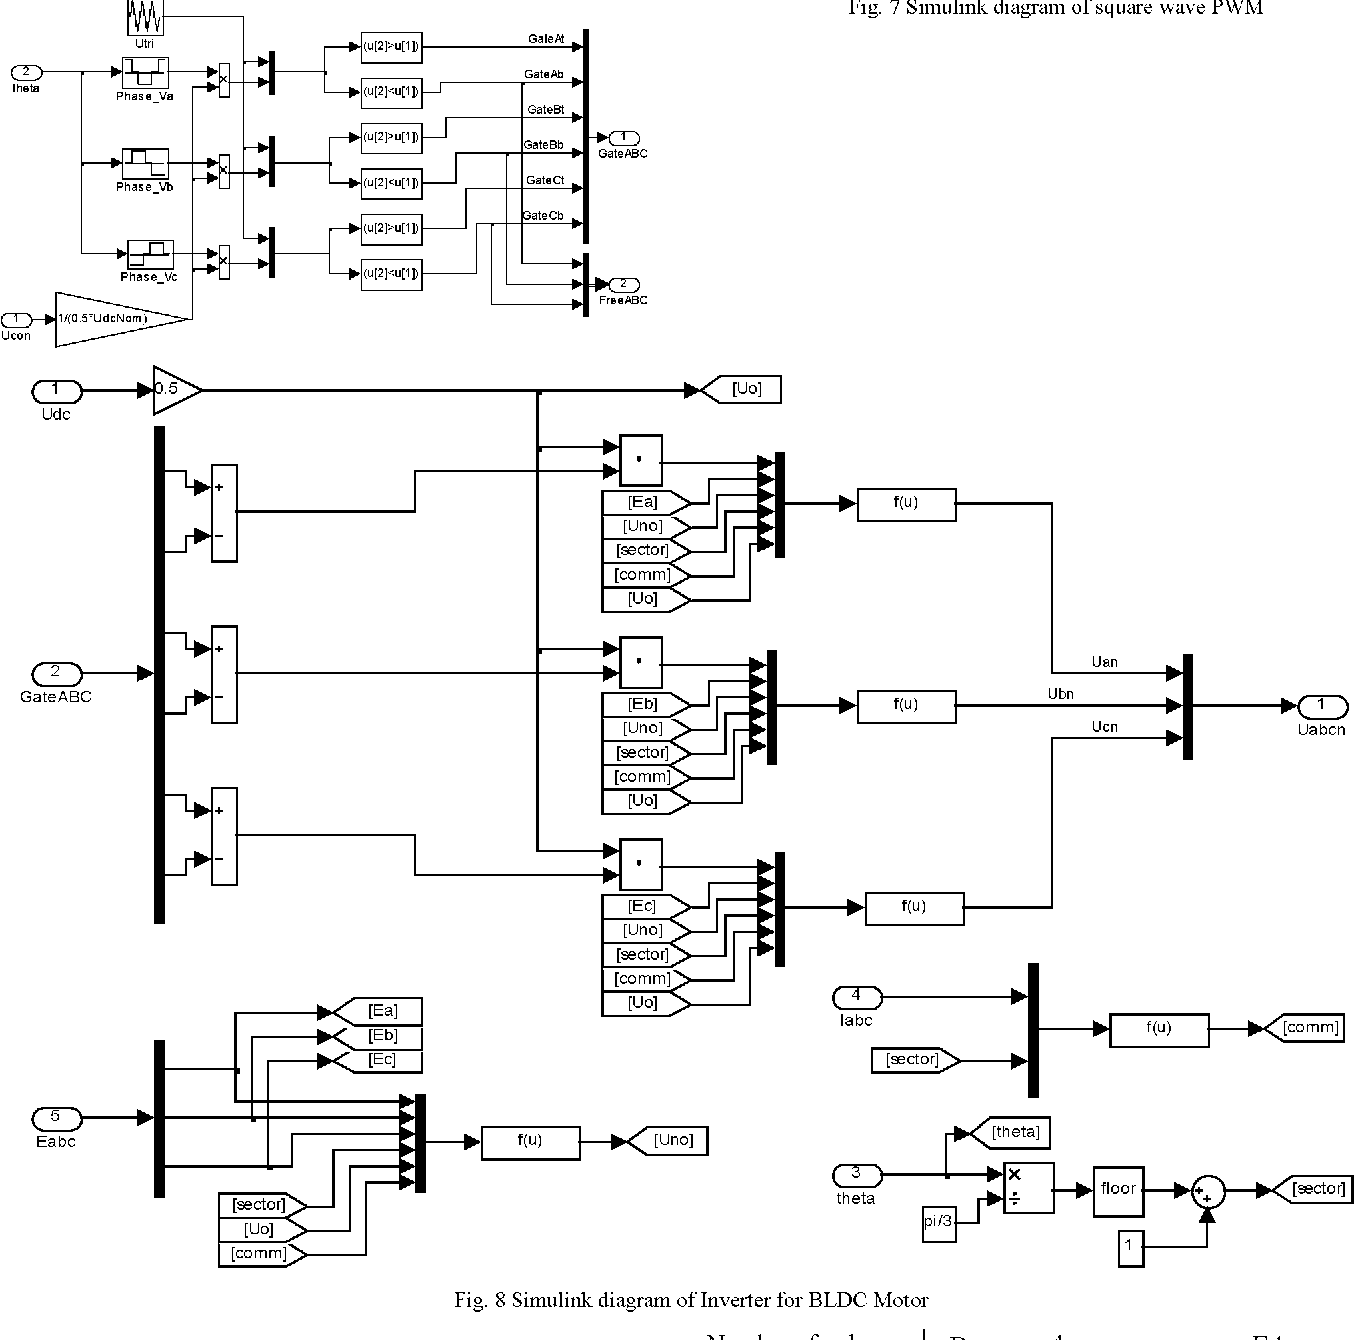 hight resolution of 8 simulink diagram of inverter for bldc motor